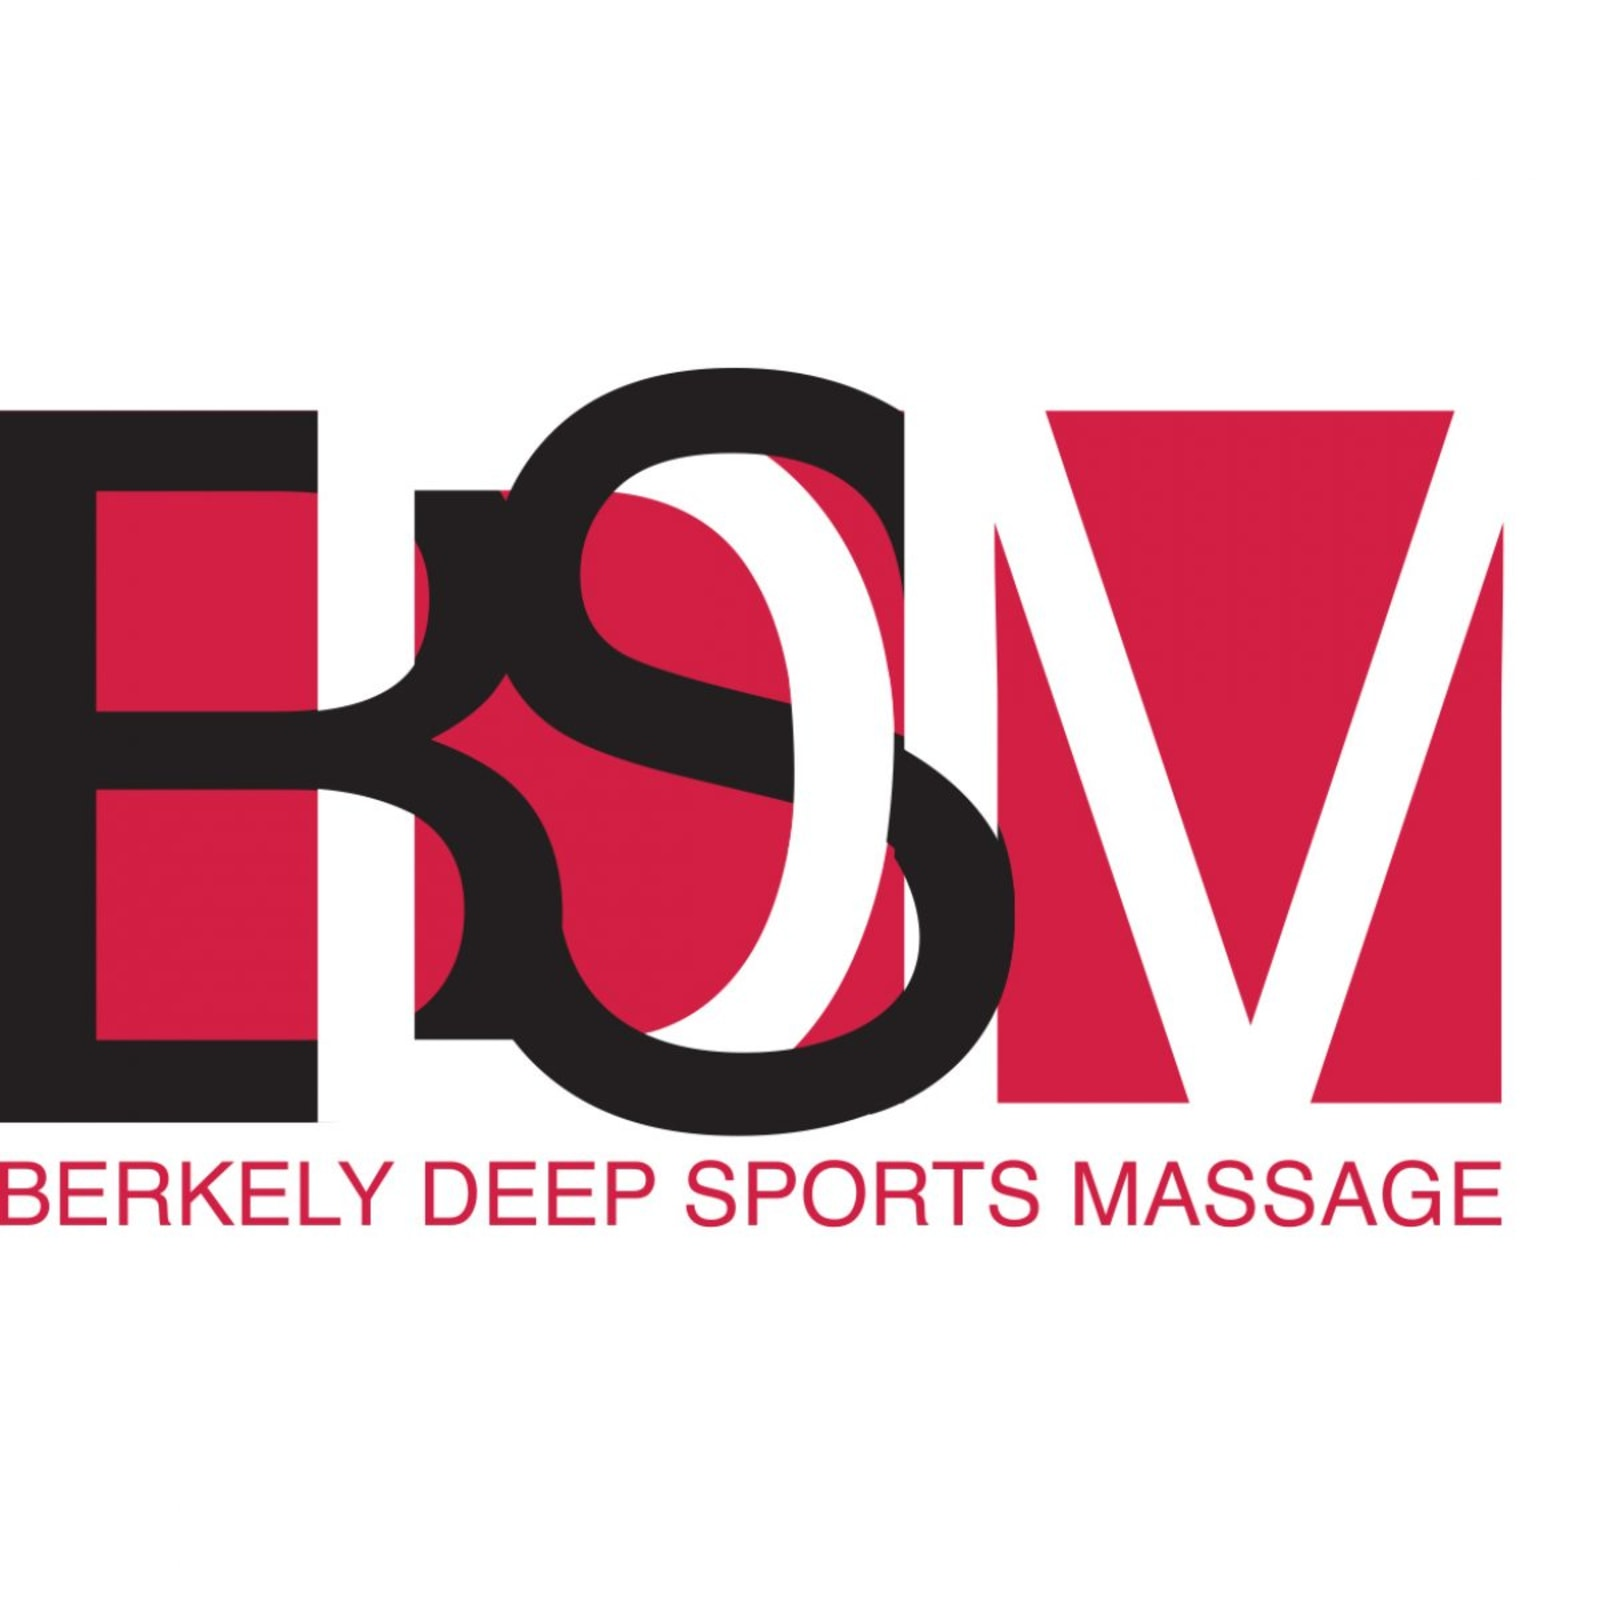 Gifts at Berkeley Deep Sports Massage